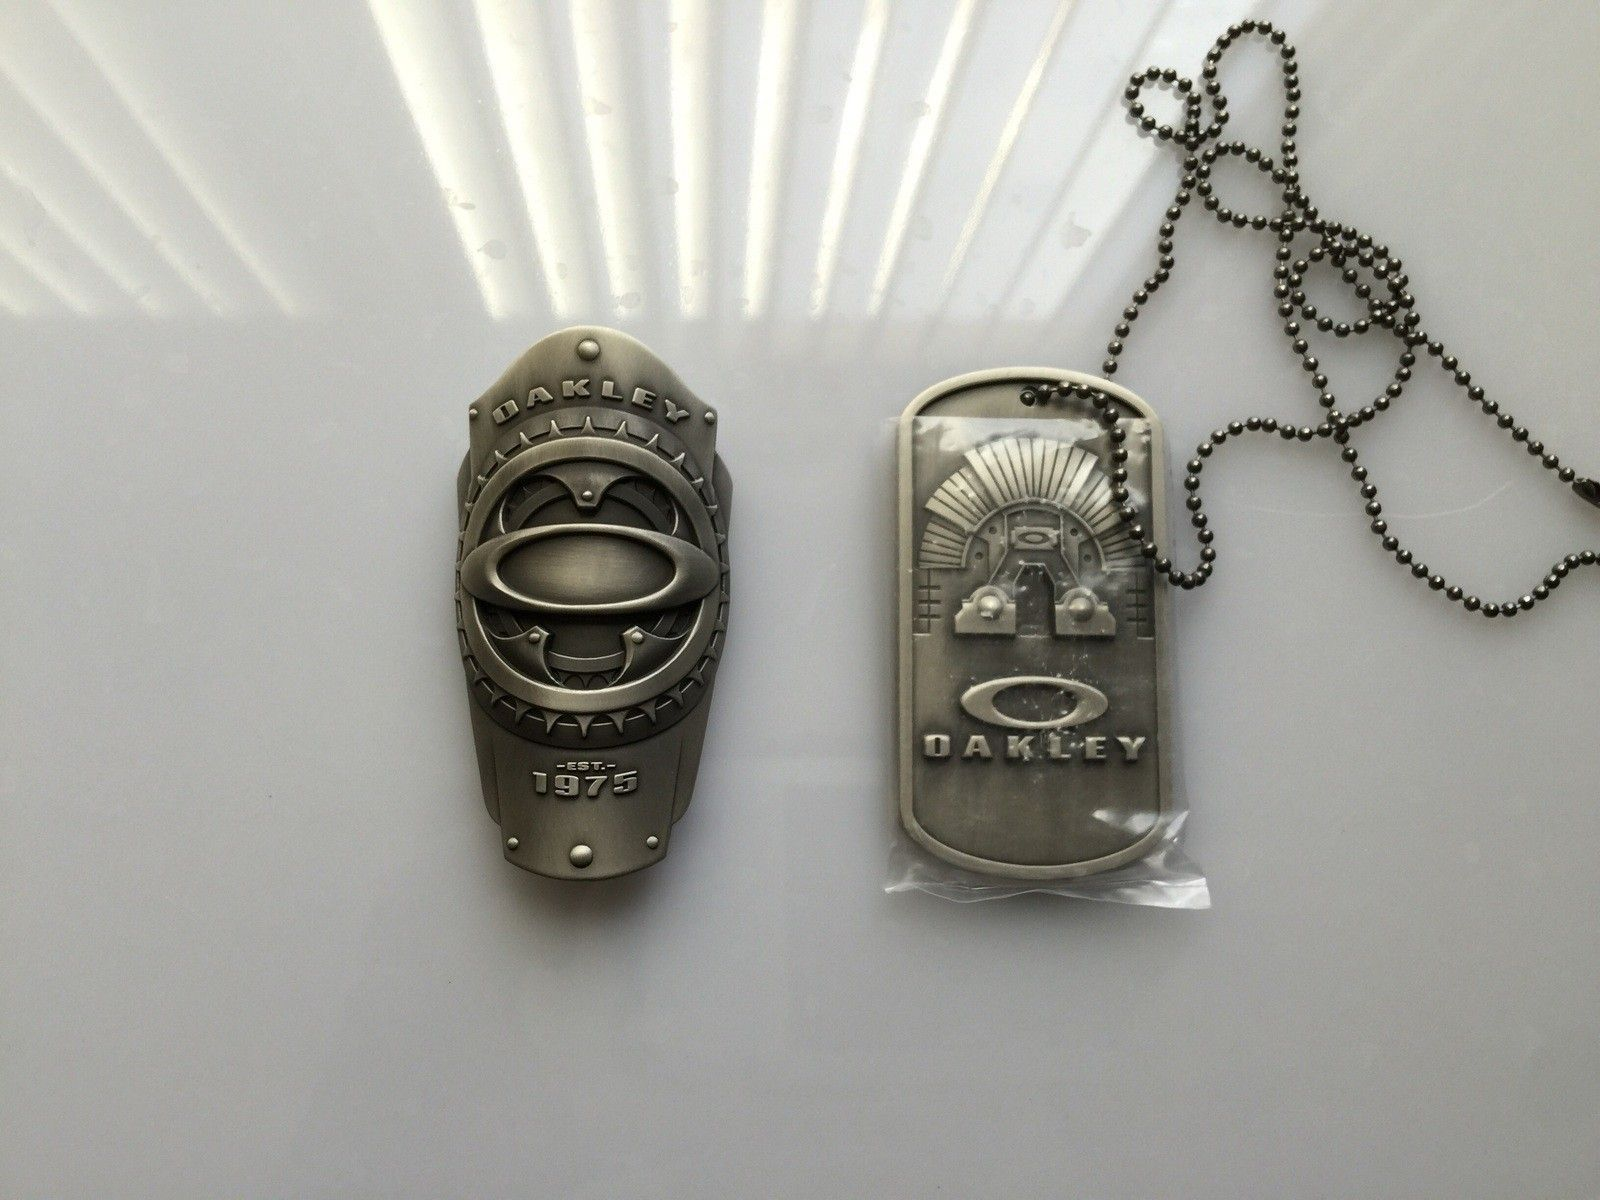 Oakley metal works sheriff badge and big dog tag - image.jpg